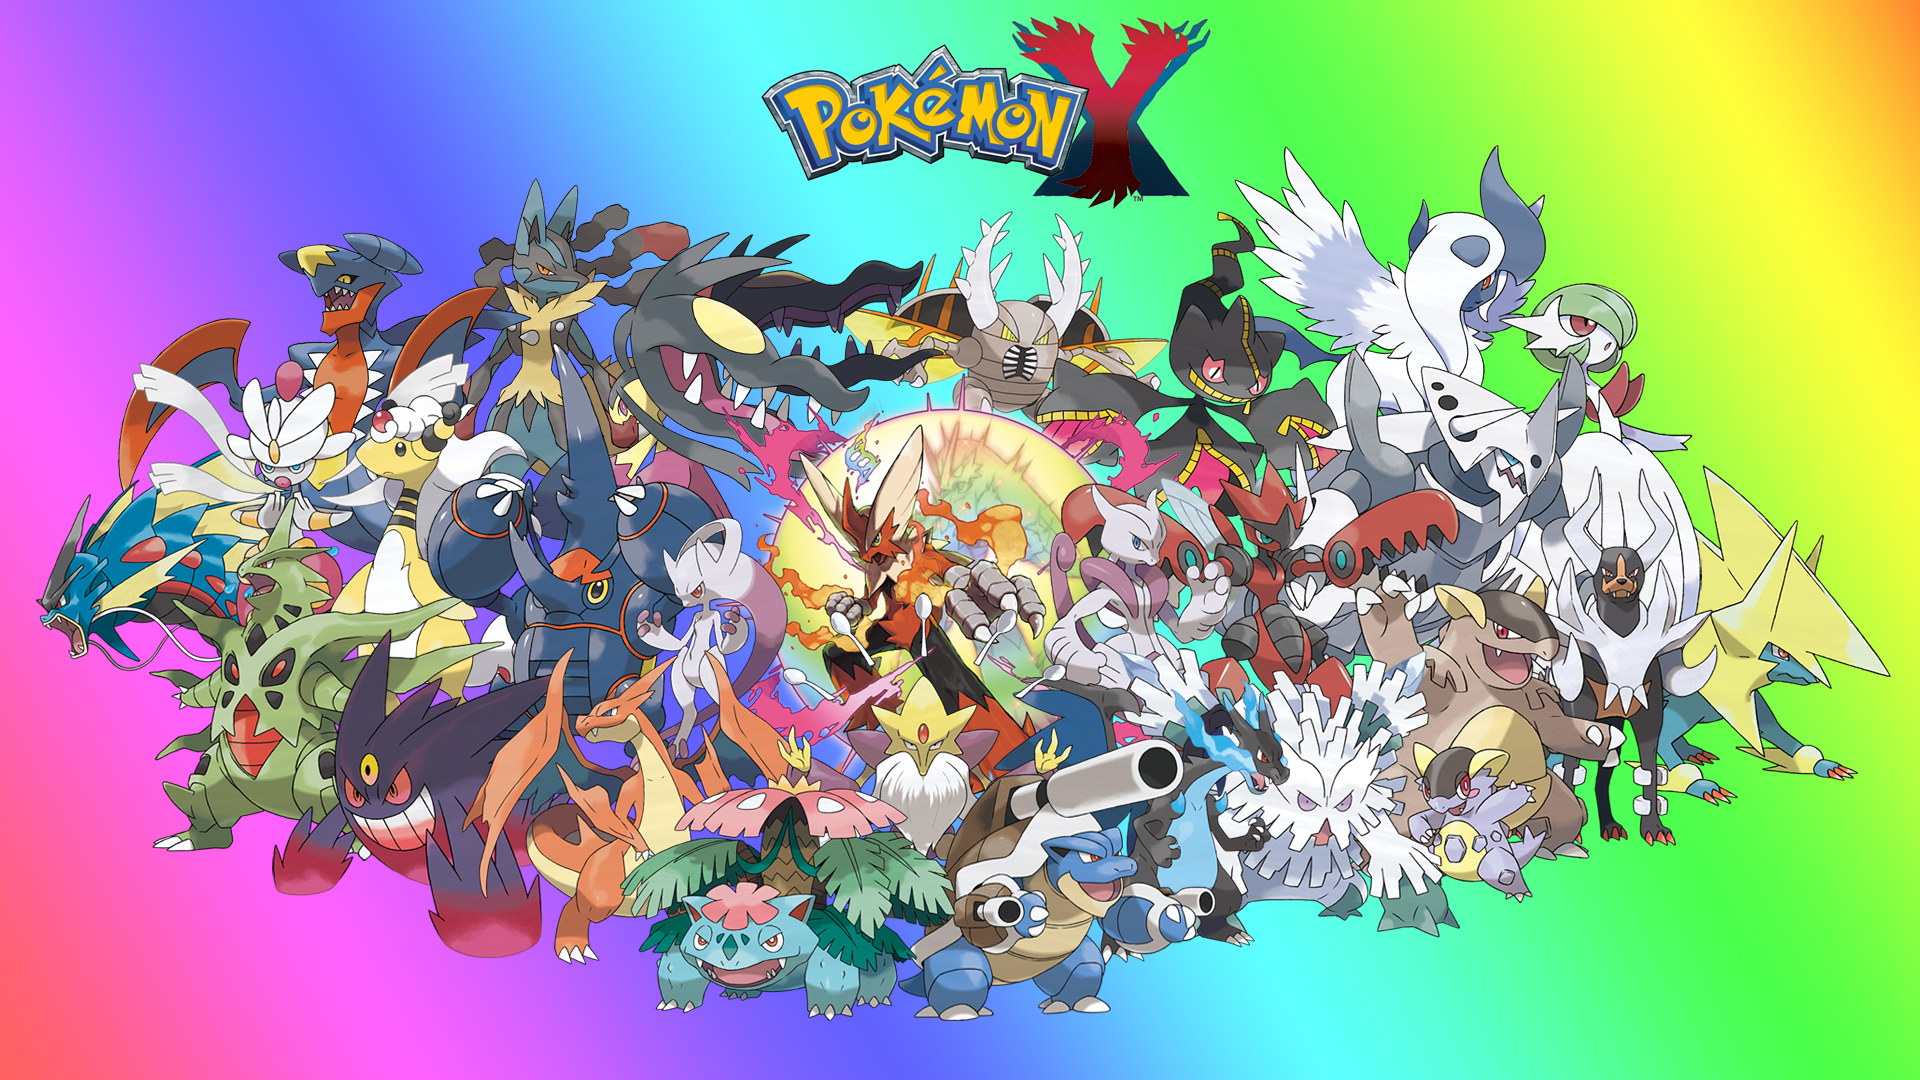 Gallery images and information: Pokemon Evolution List